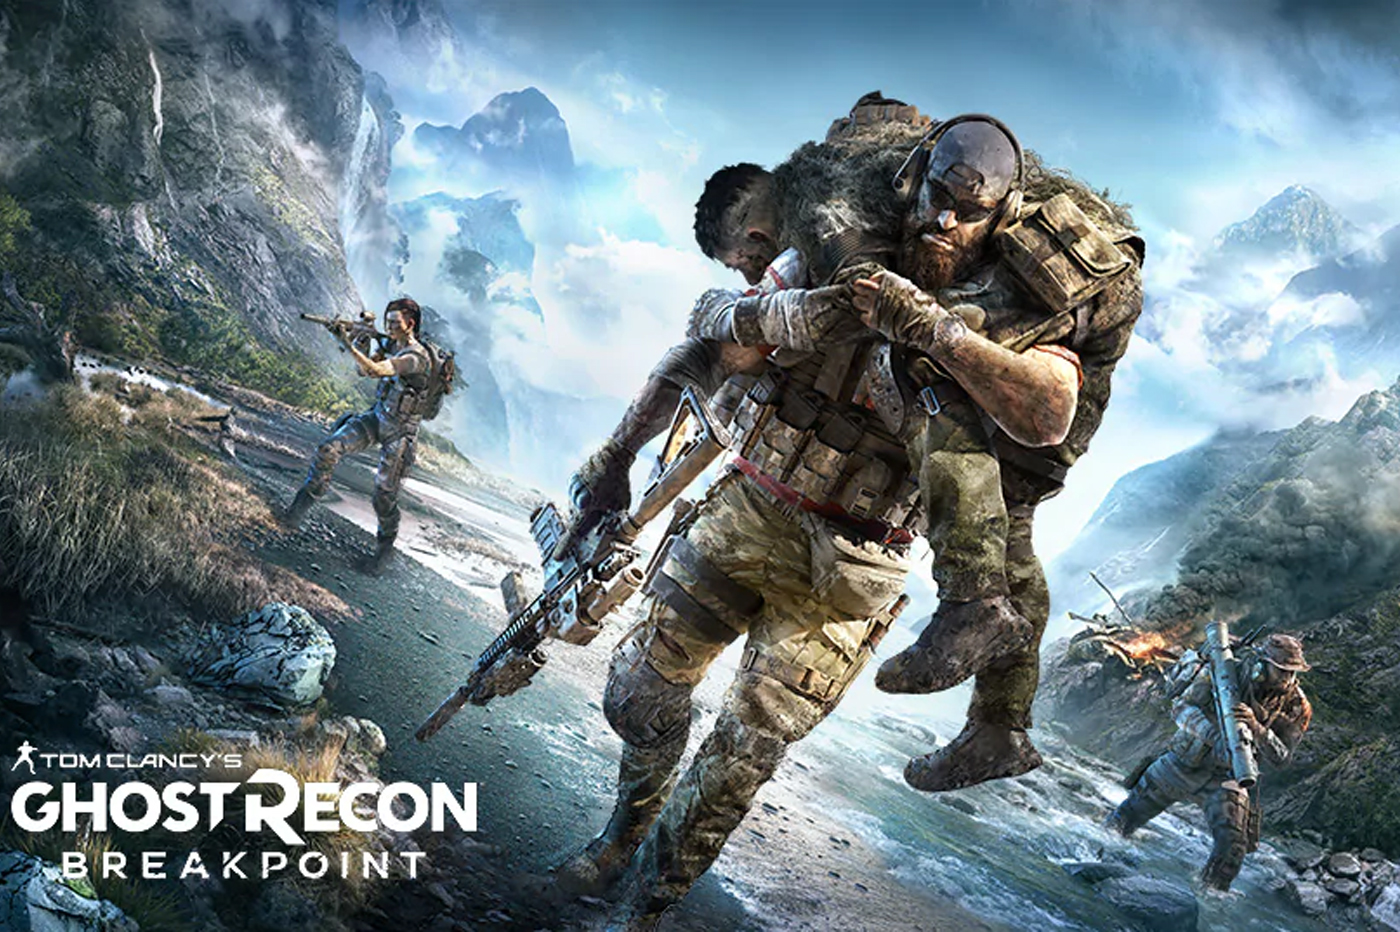 Le nouveau Ghost Recon Breakpoint